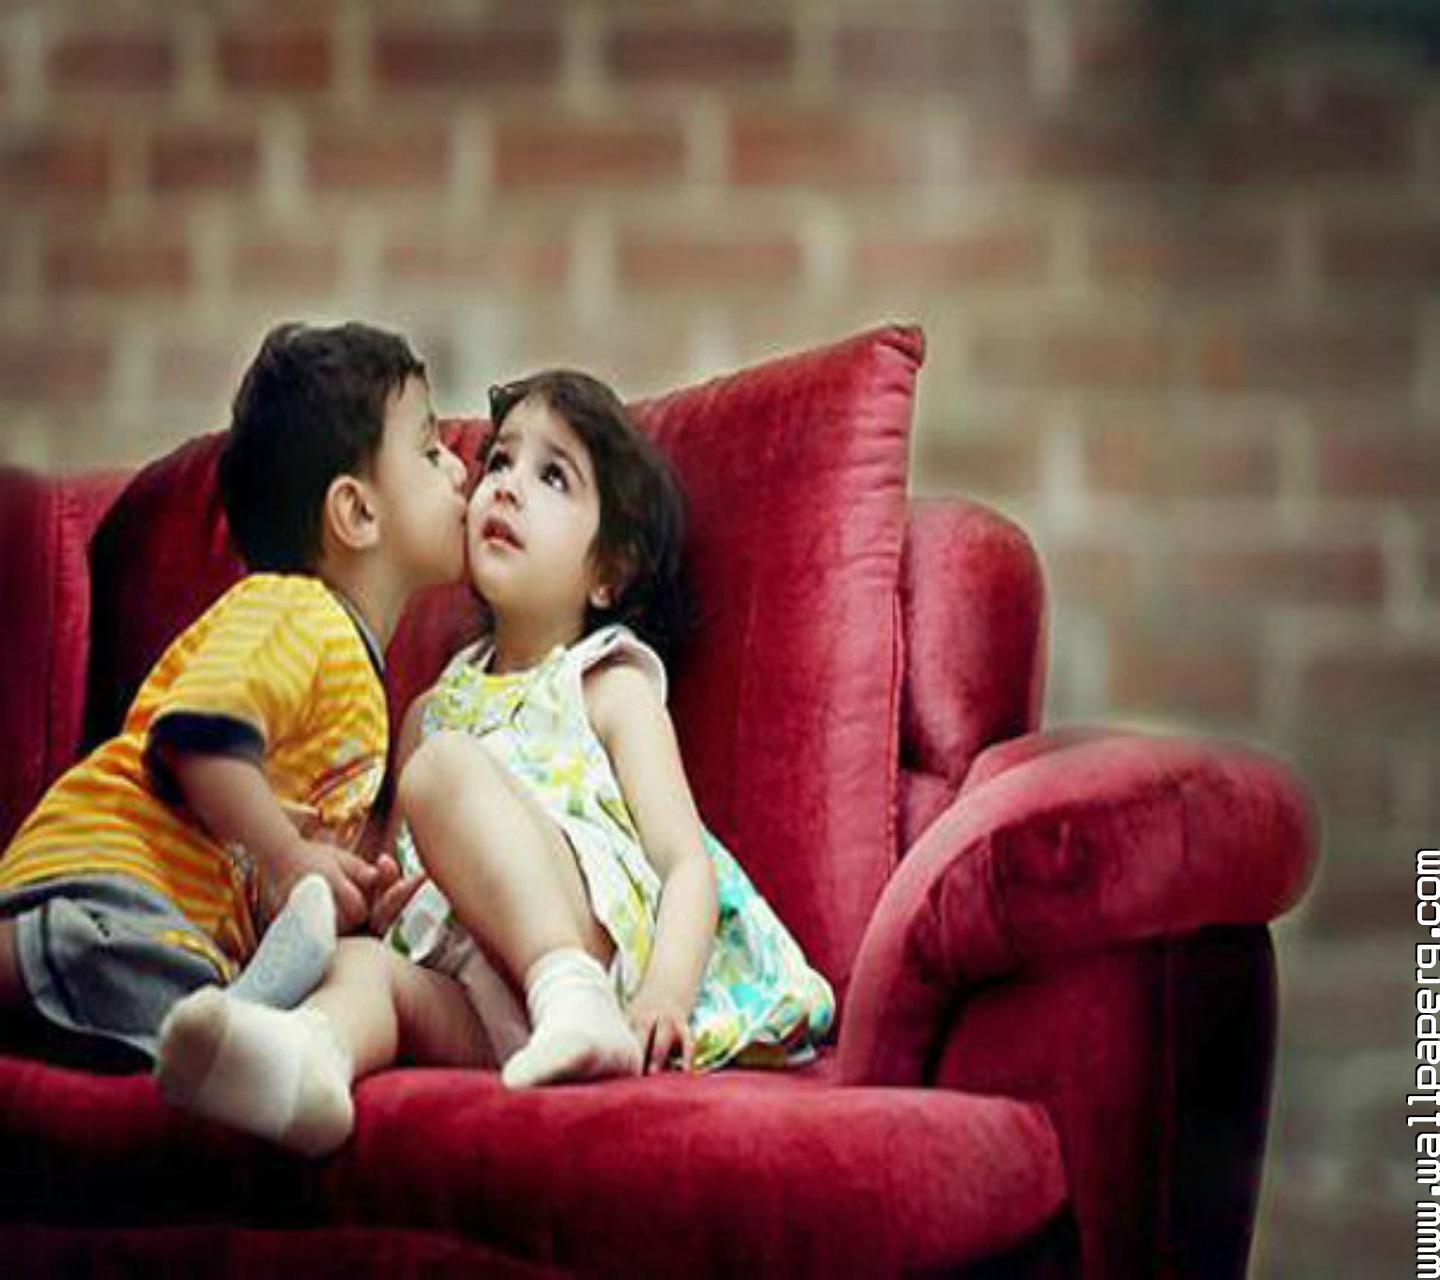 Cute Couples Holding Hands Hd Wallpapers Cute Baby Kiss Hd Wallpapers Wallpaper Cave